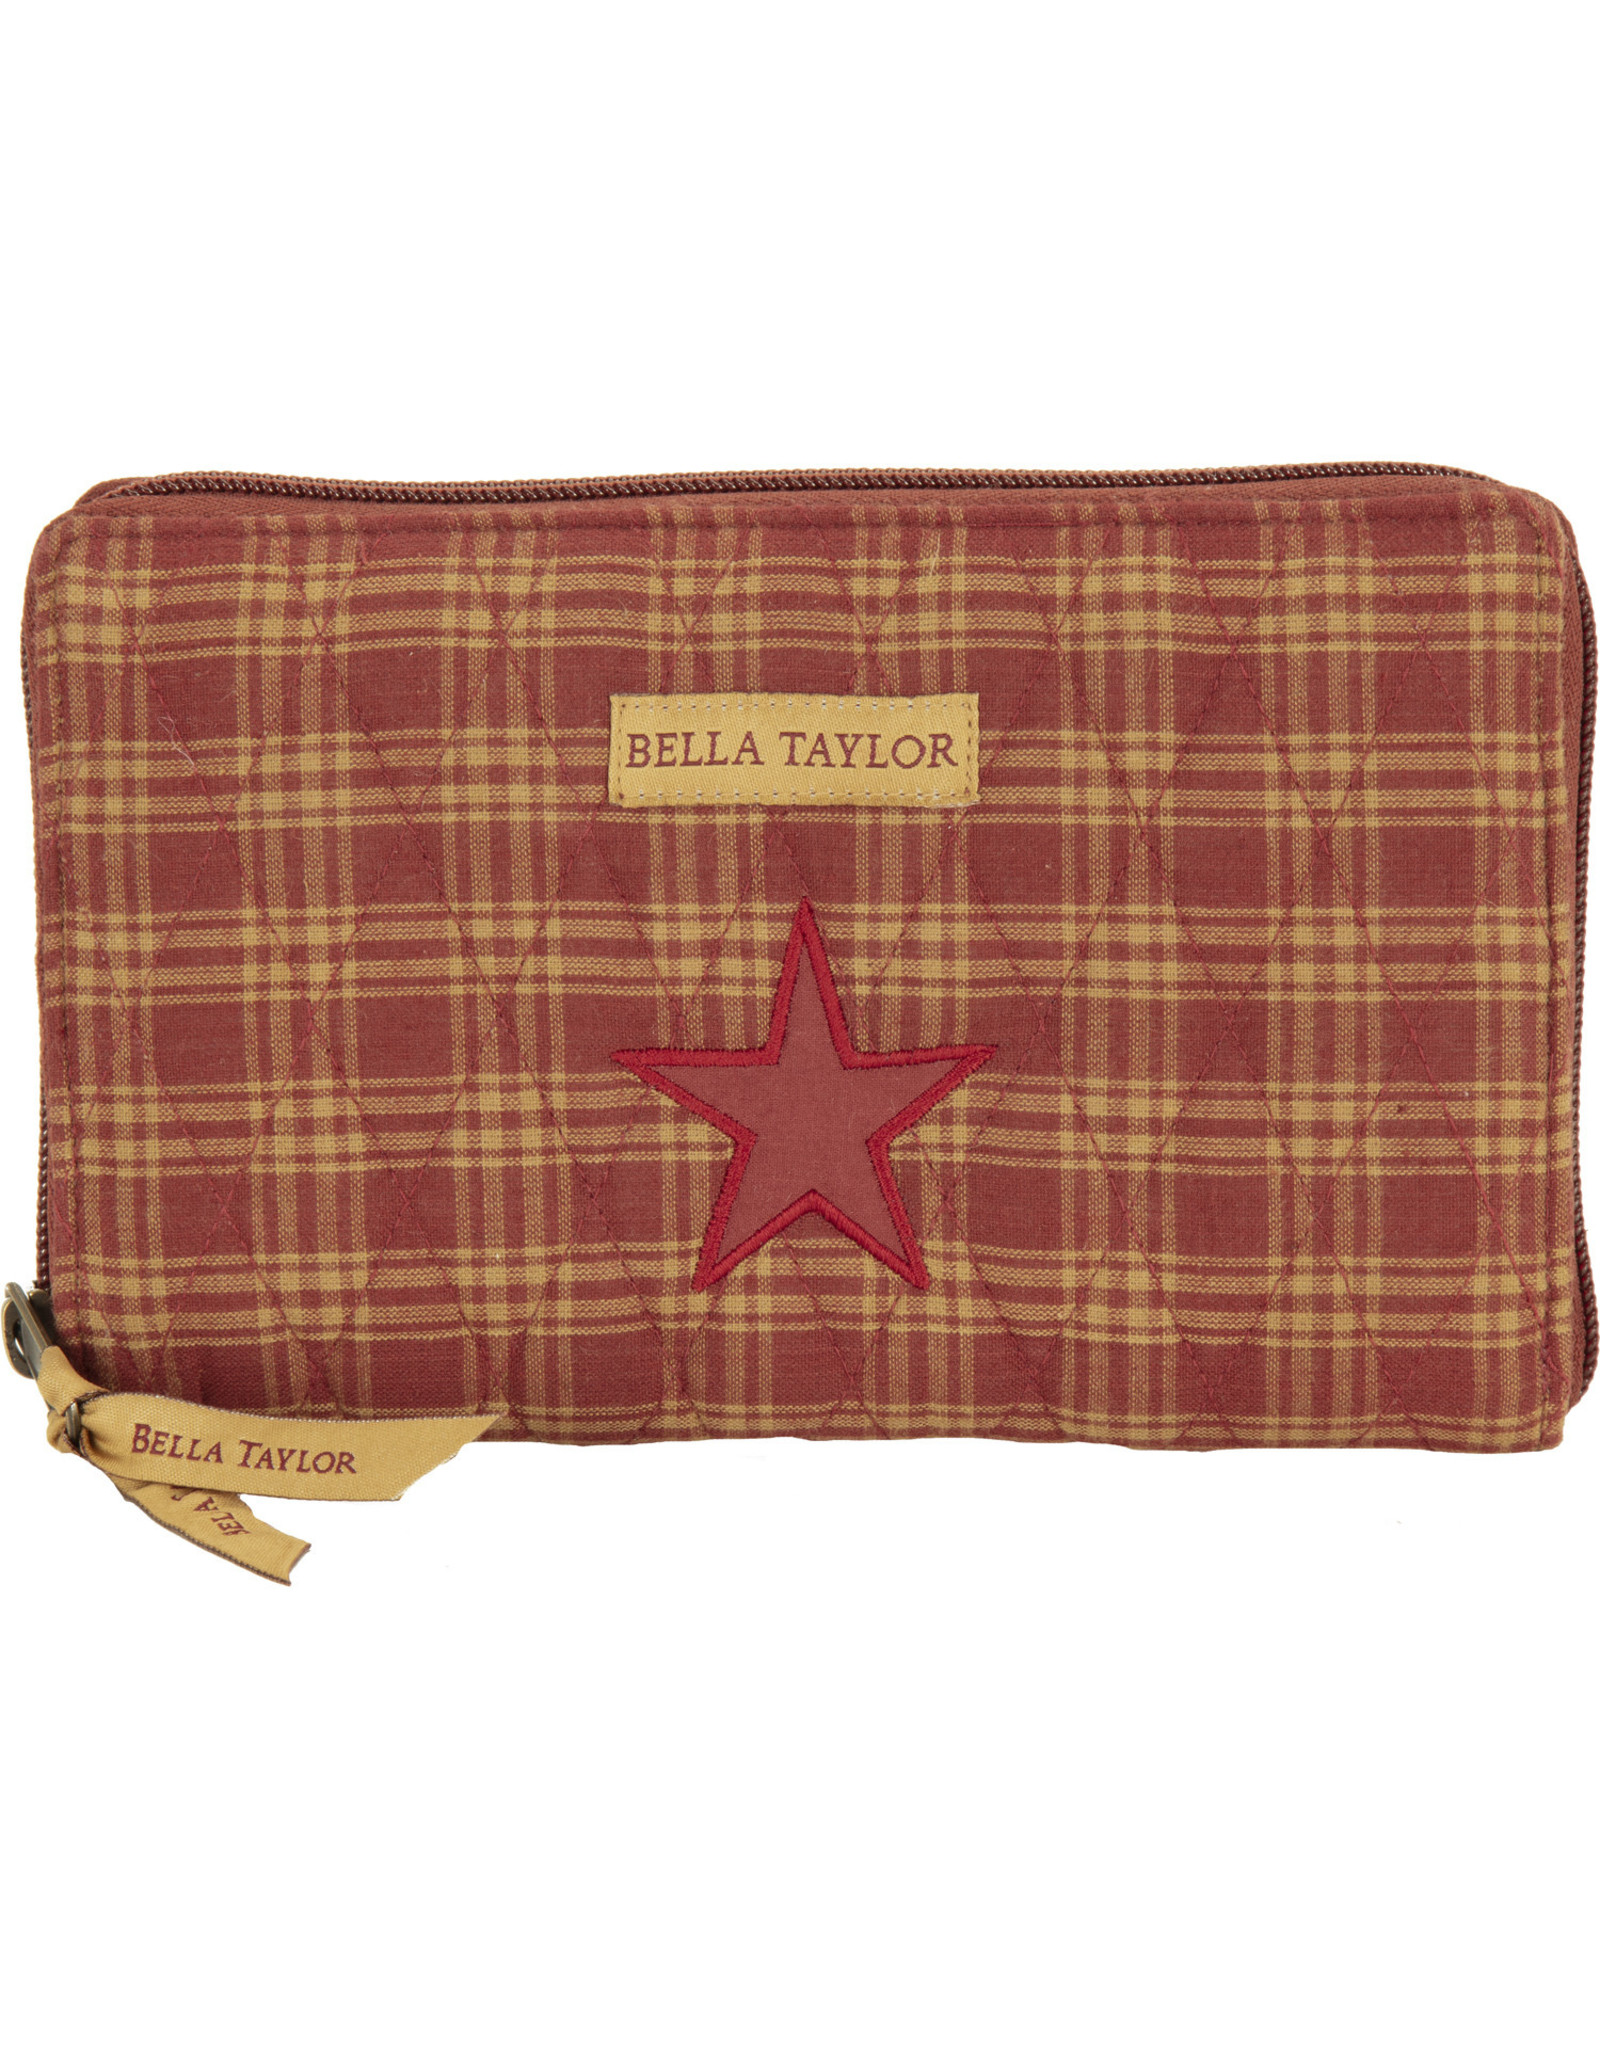 Bella Taylor Ninepatch Star - Cash System Wallet V2